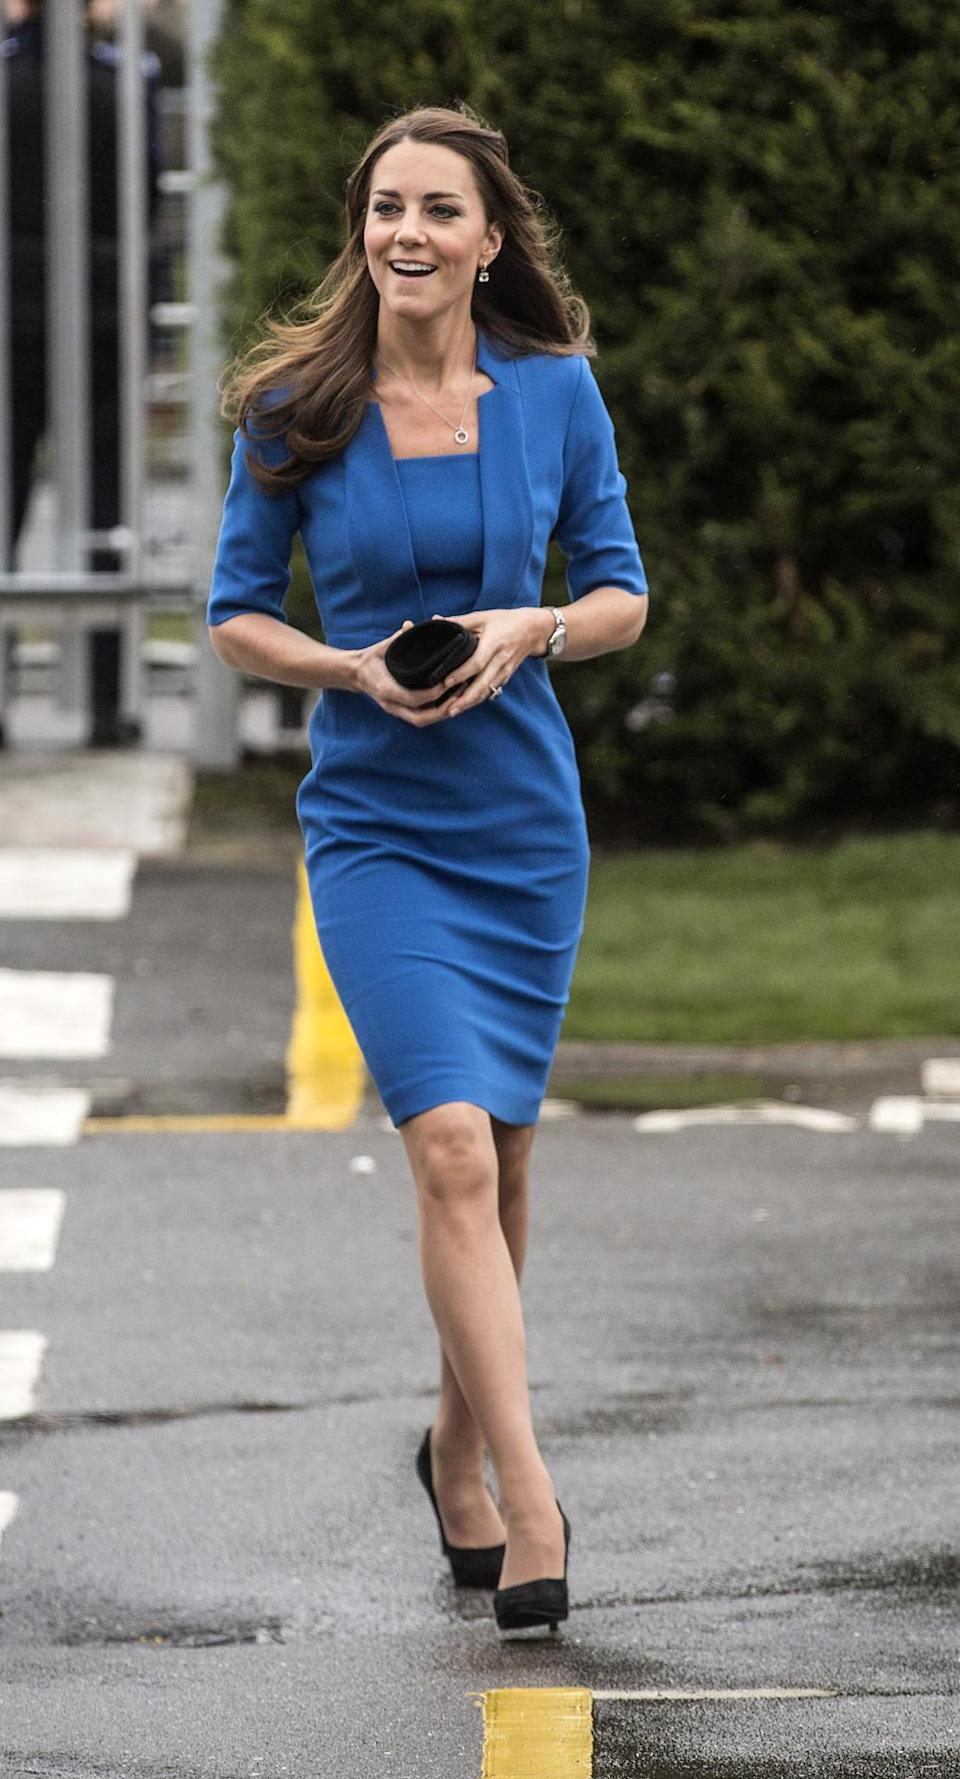 <p>For a London school event, Kate donned an all-blue fitted ensemble by L.K. Bennett with a black clutch, suede pumps and Cartier jewellery.</p><p><i>[Photo: PA]</i></p>